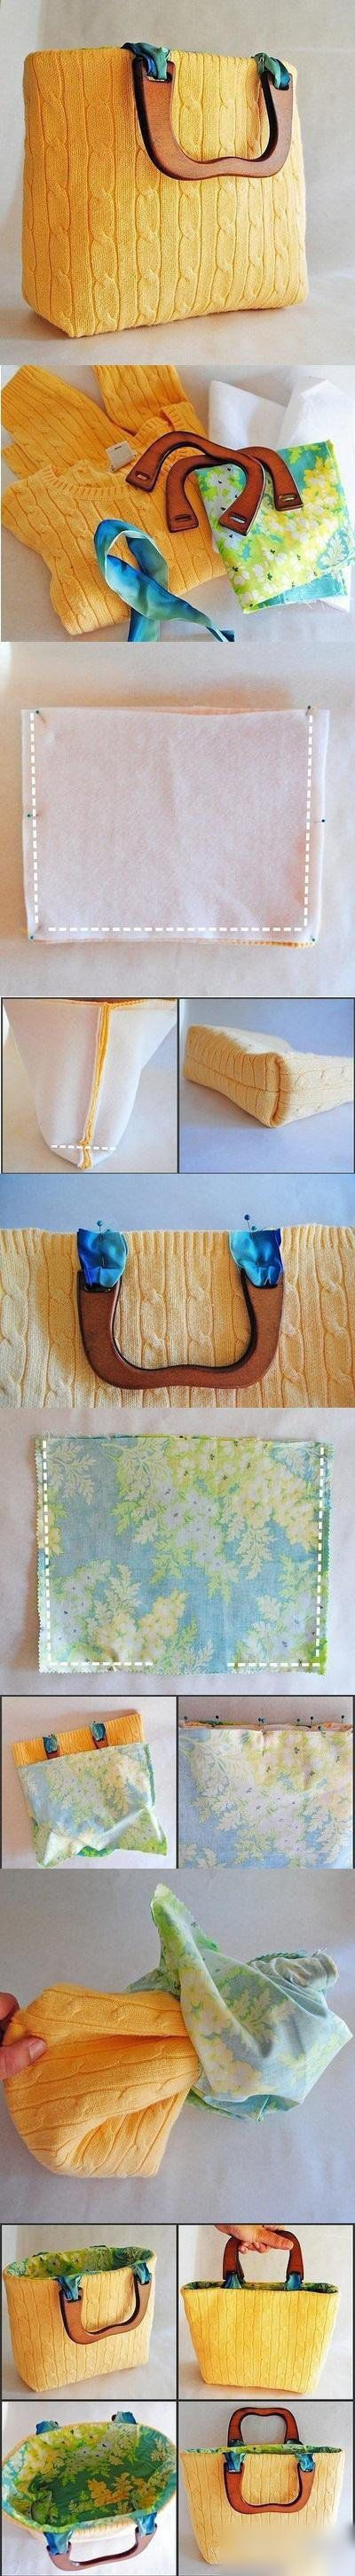 How To Make a bag from old sweater